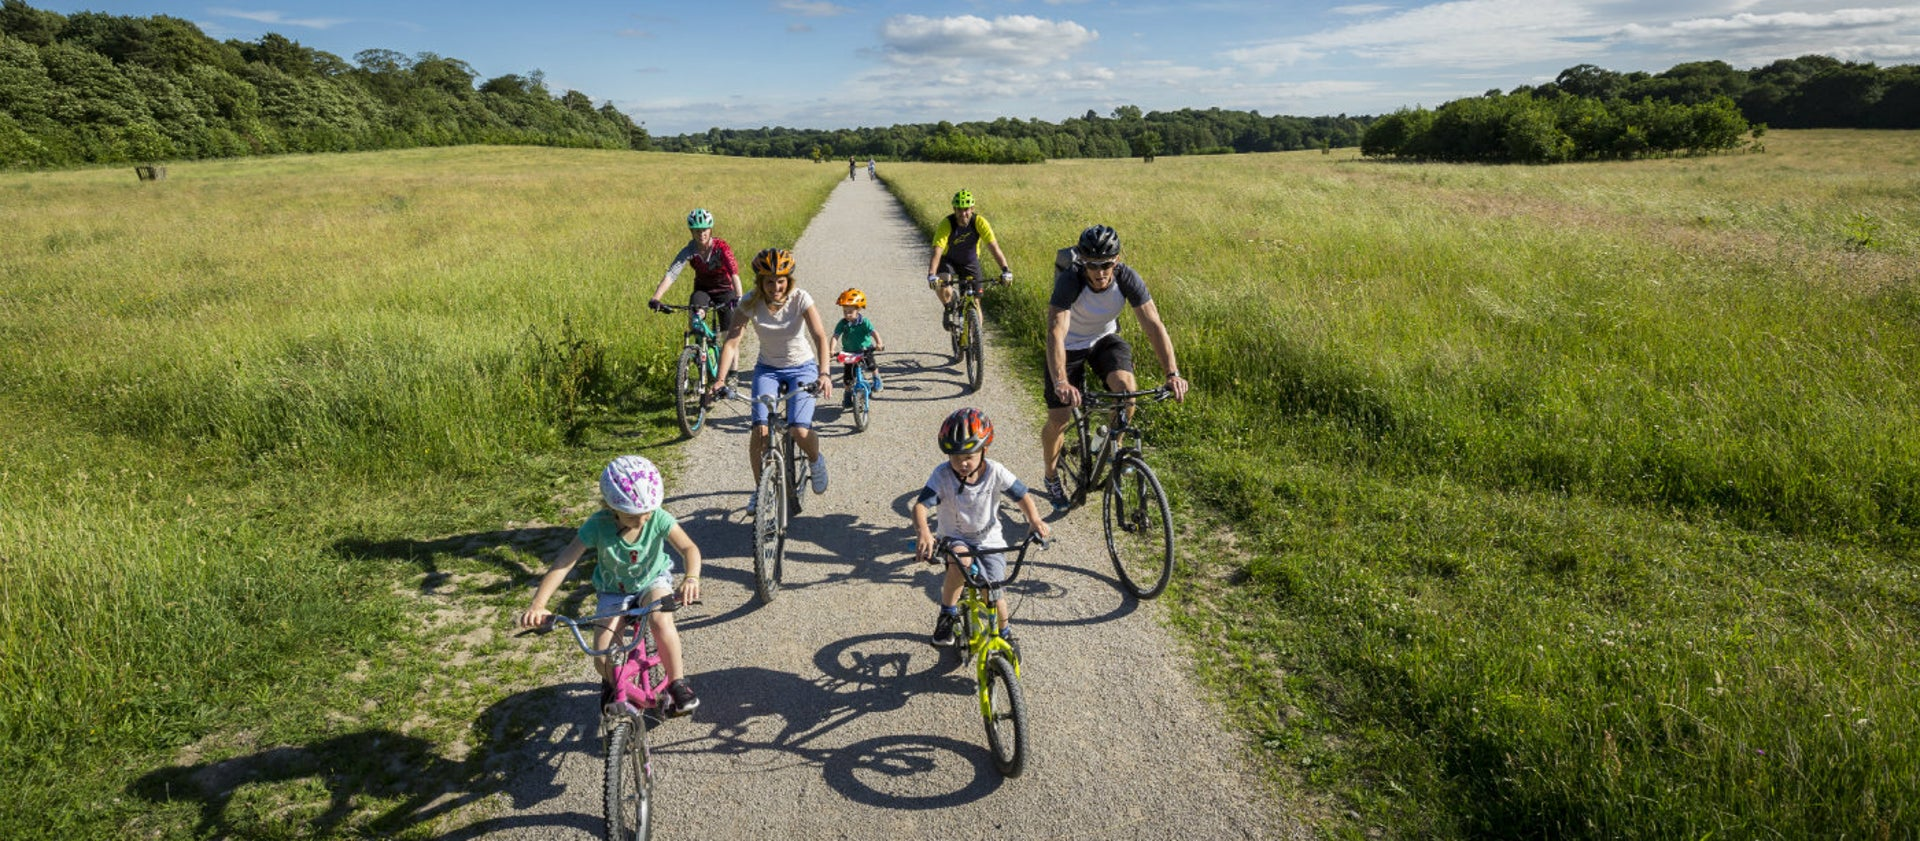 National cycling routes & trails in the UK   National Trust